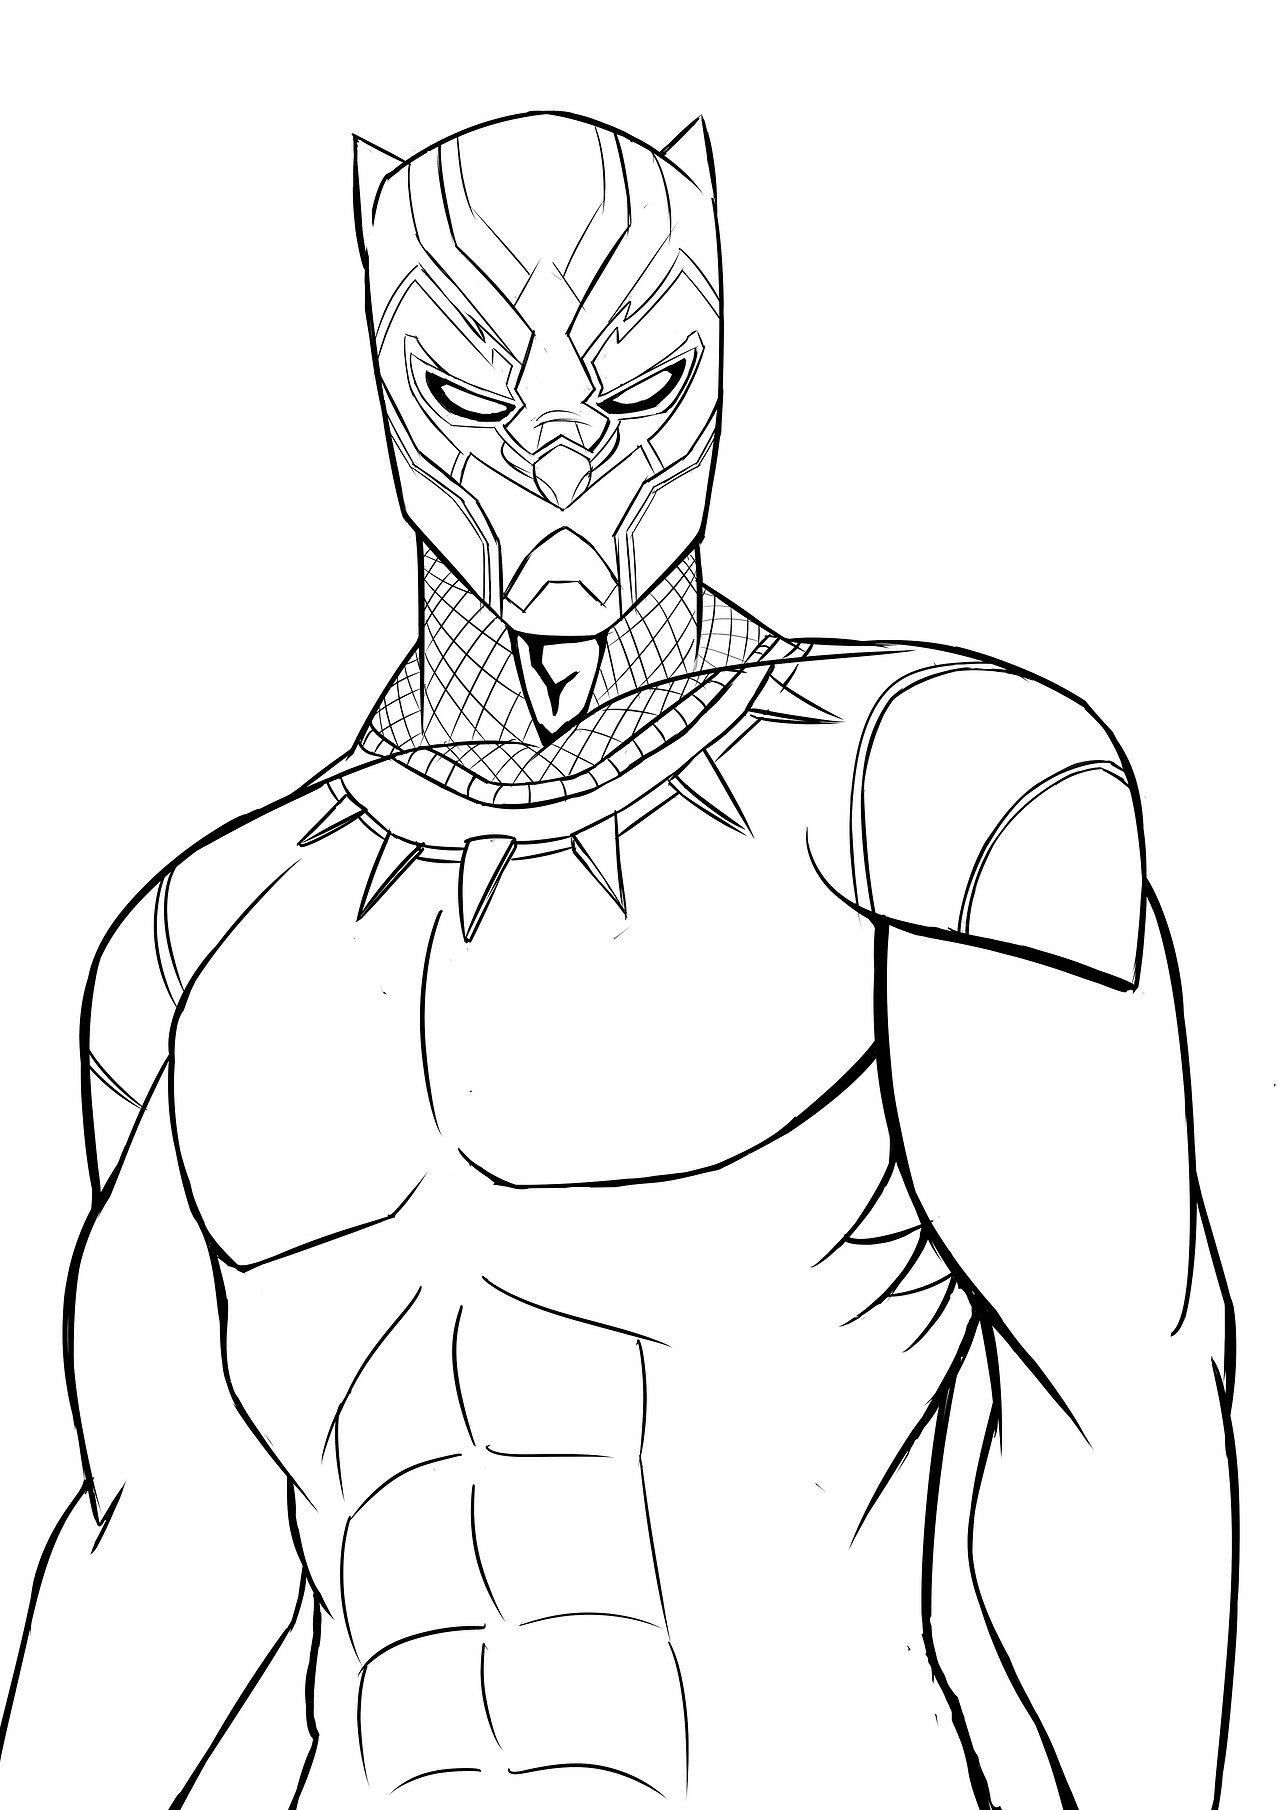 Fantastic Black Panther Coloring Page Avengers Coloring Pages